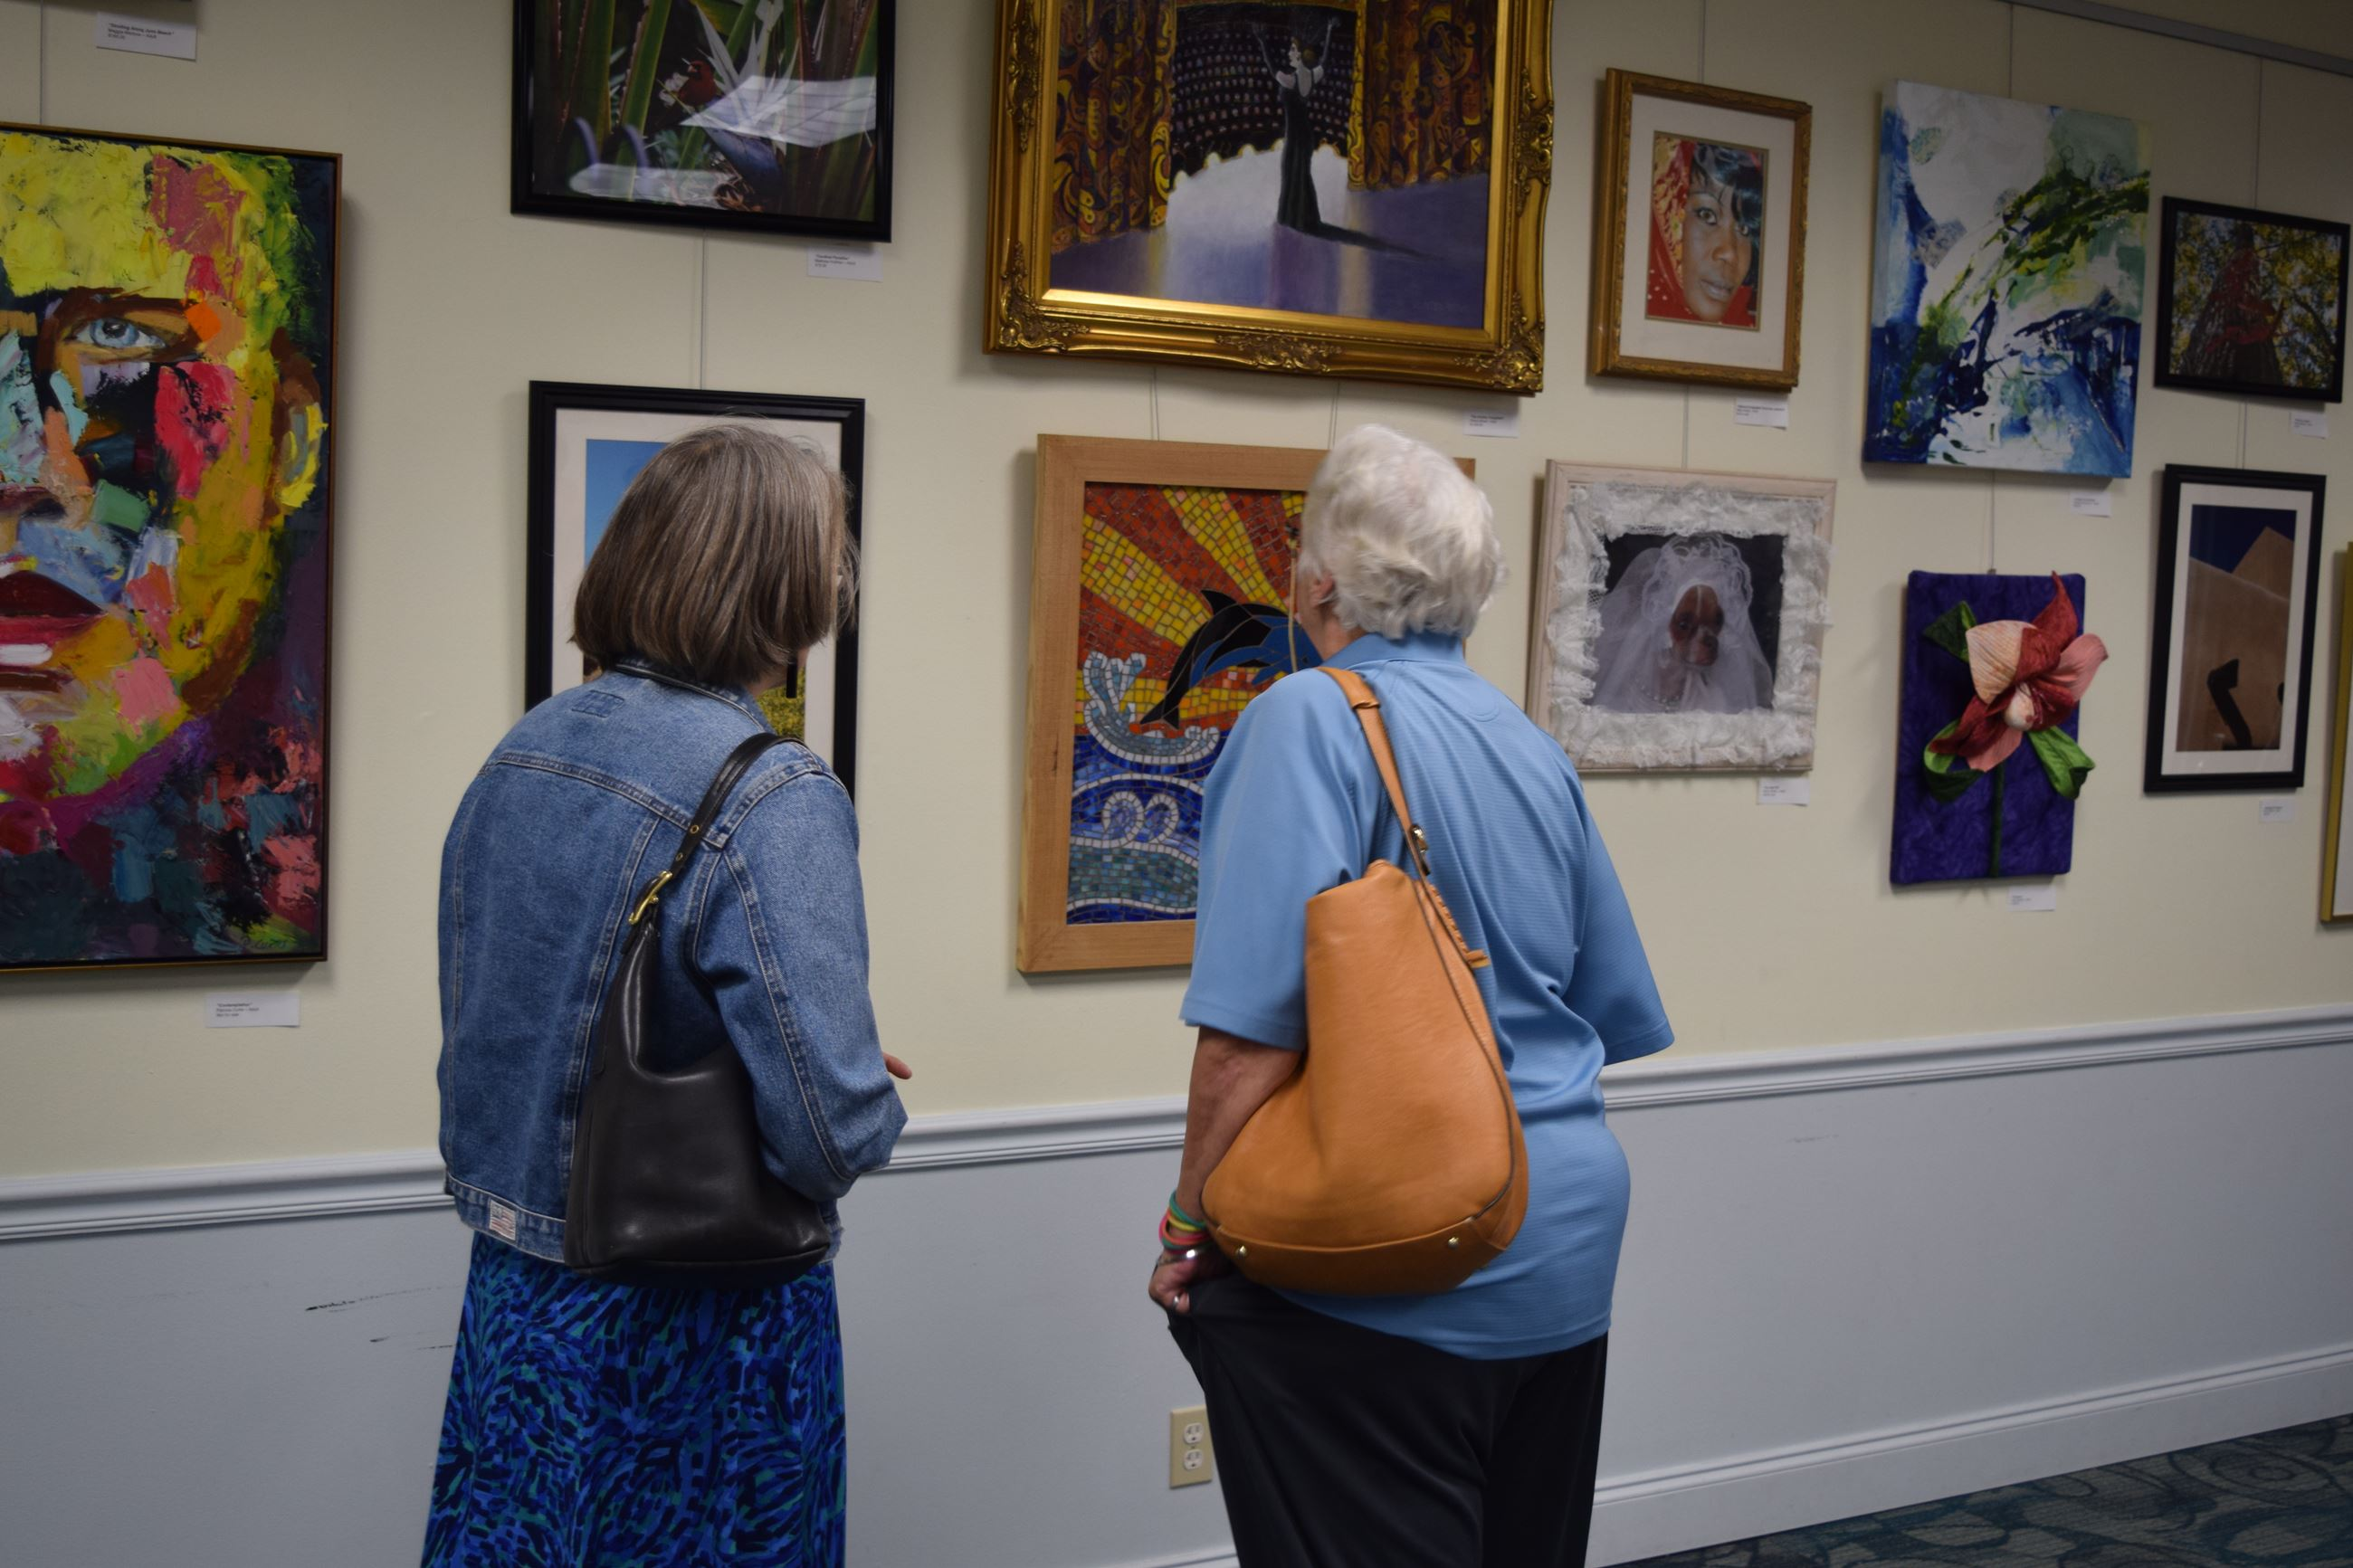 Two women looking at artwork on wall of gallery at Art Show